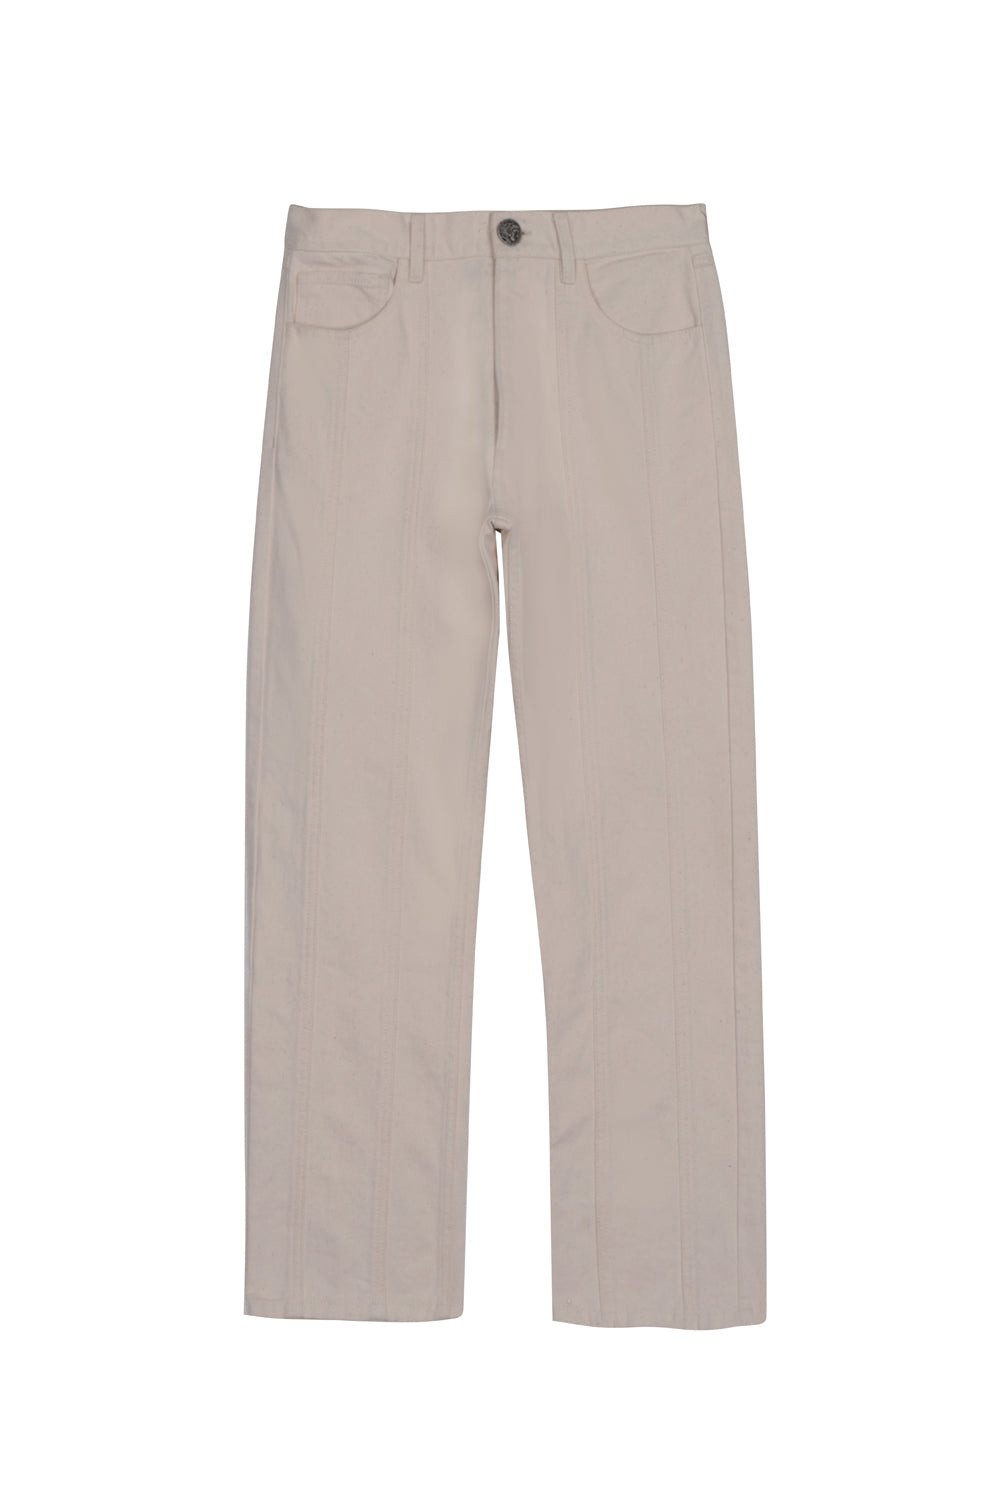 Ivory multipanel denim pants (4387469918273)